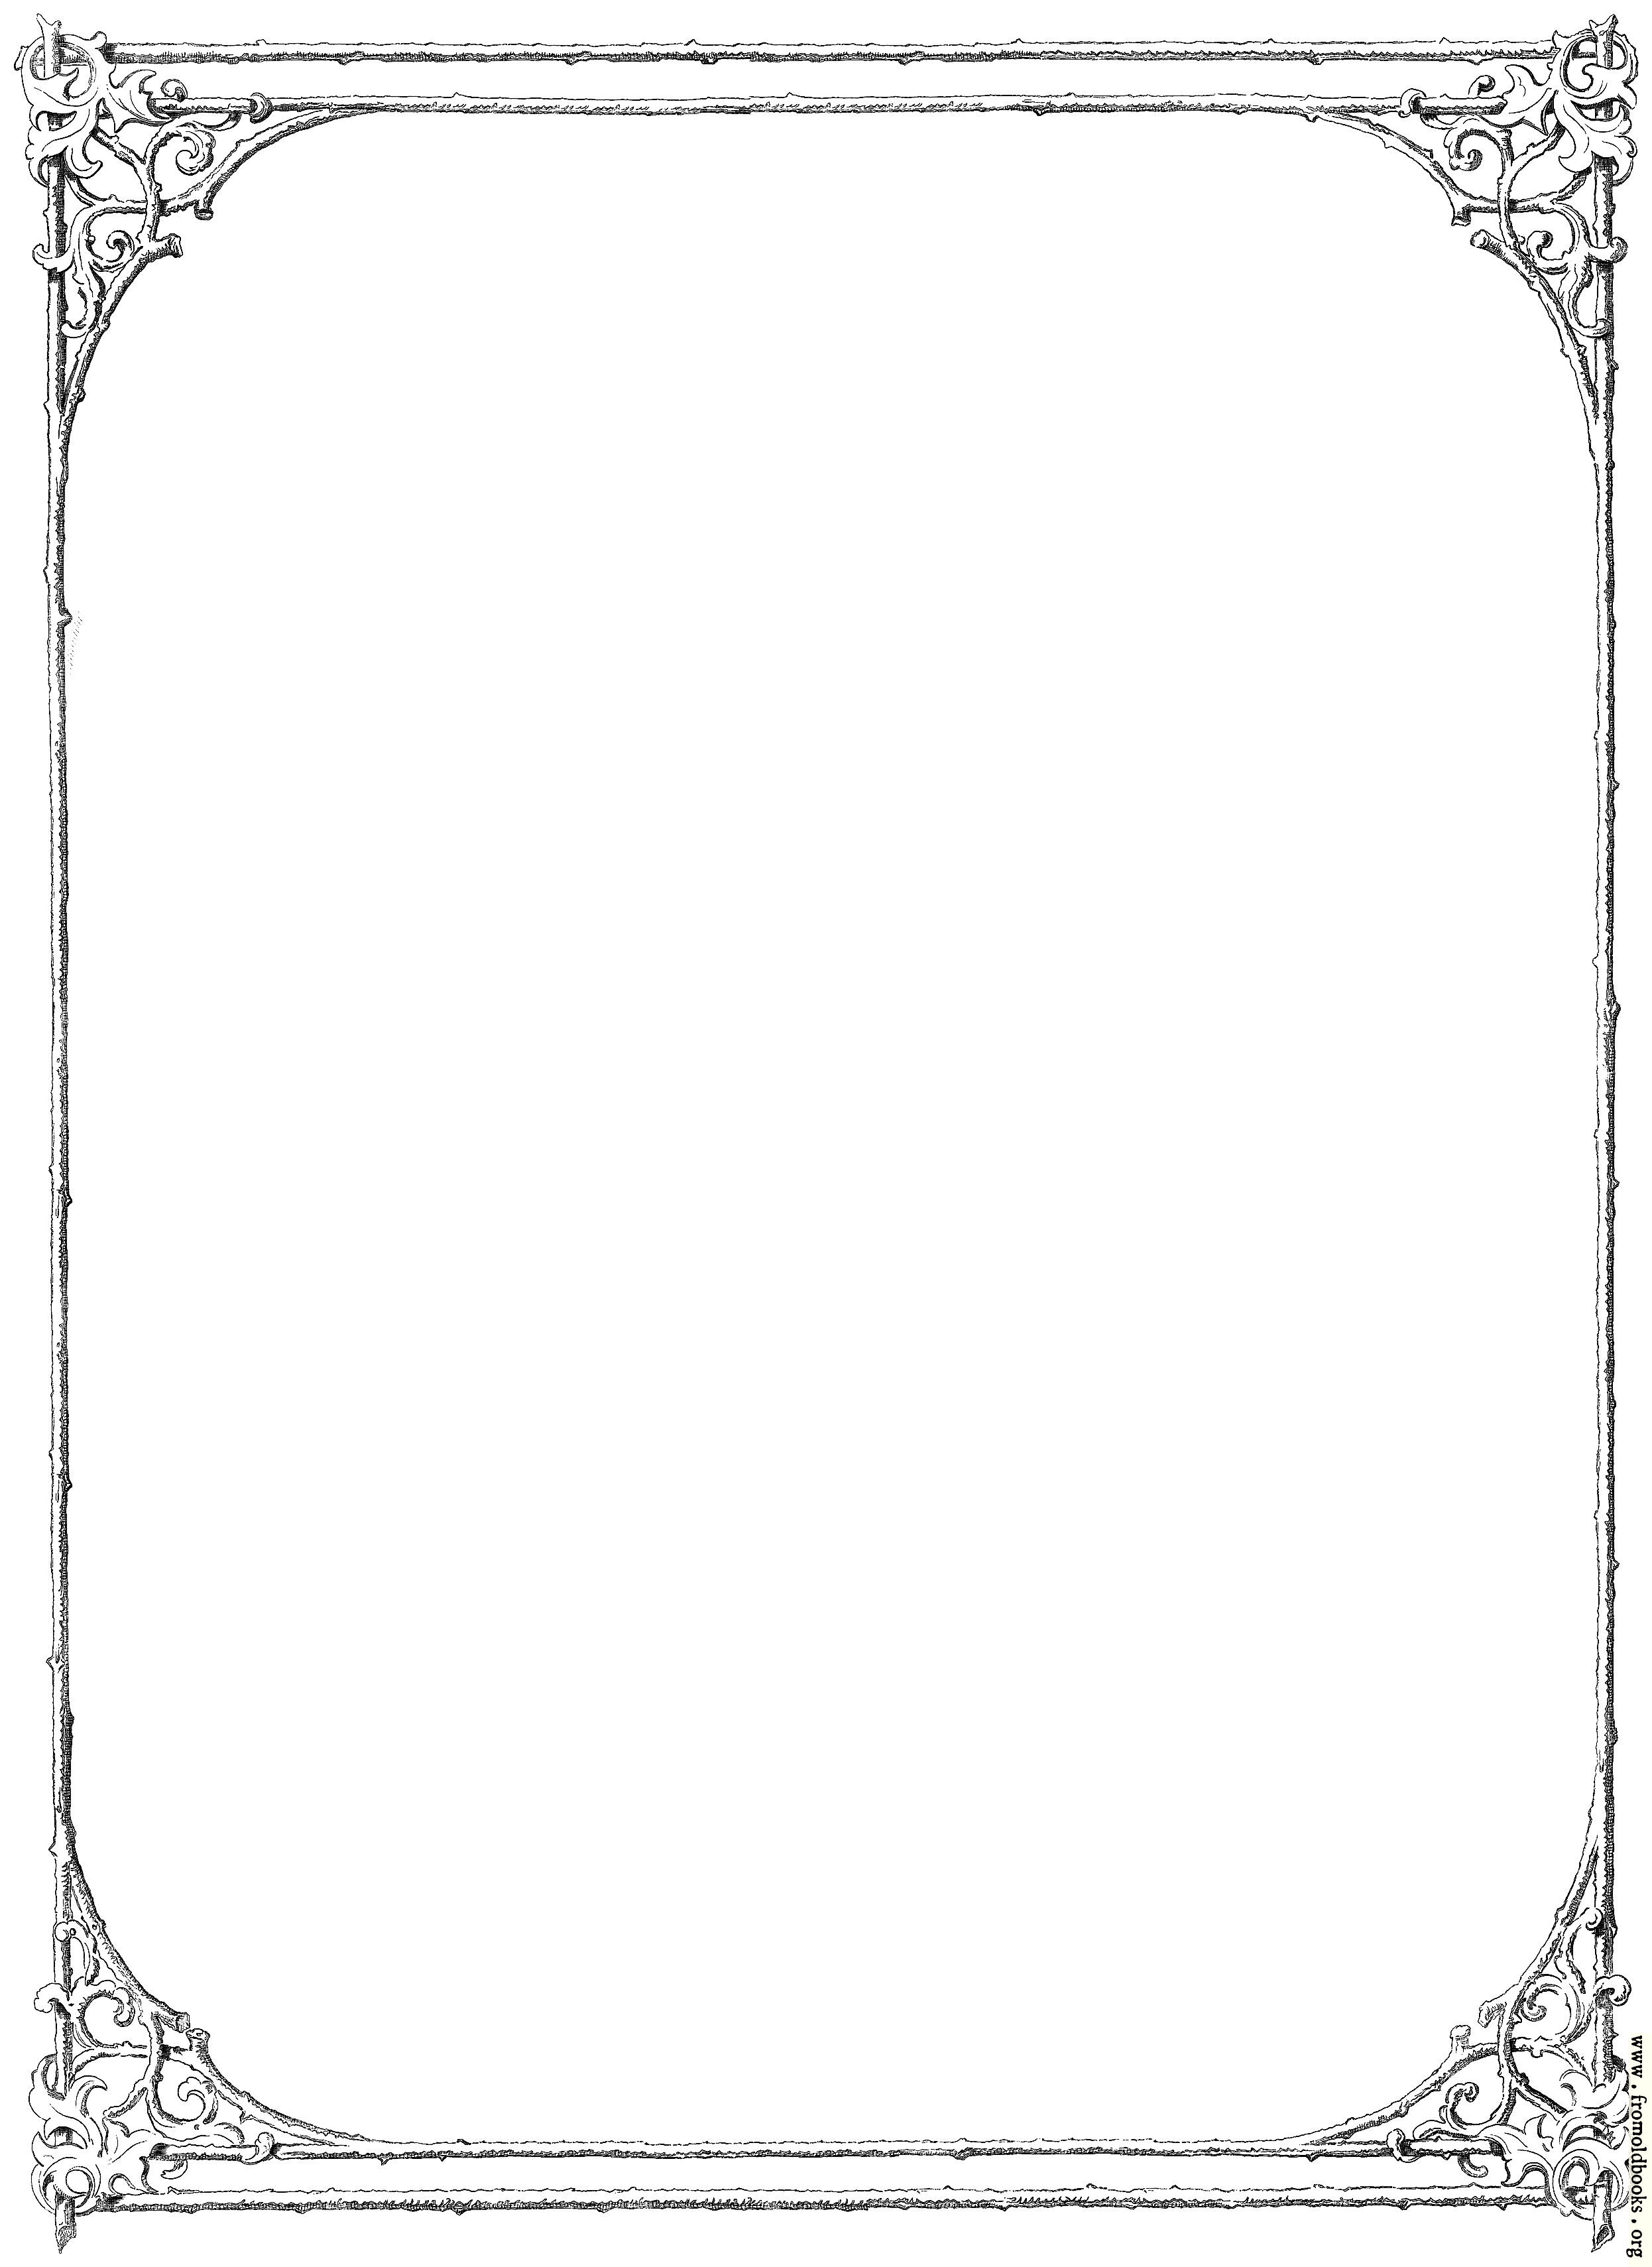 Free Clip Art Victorian Border Of Twigs And Leaves Simplified intended for Clip Art Victorian Borders